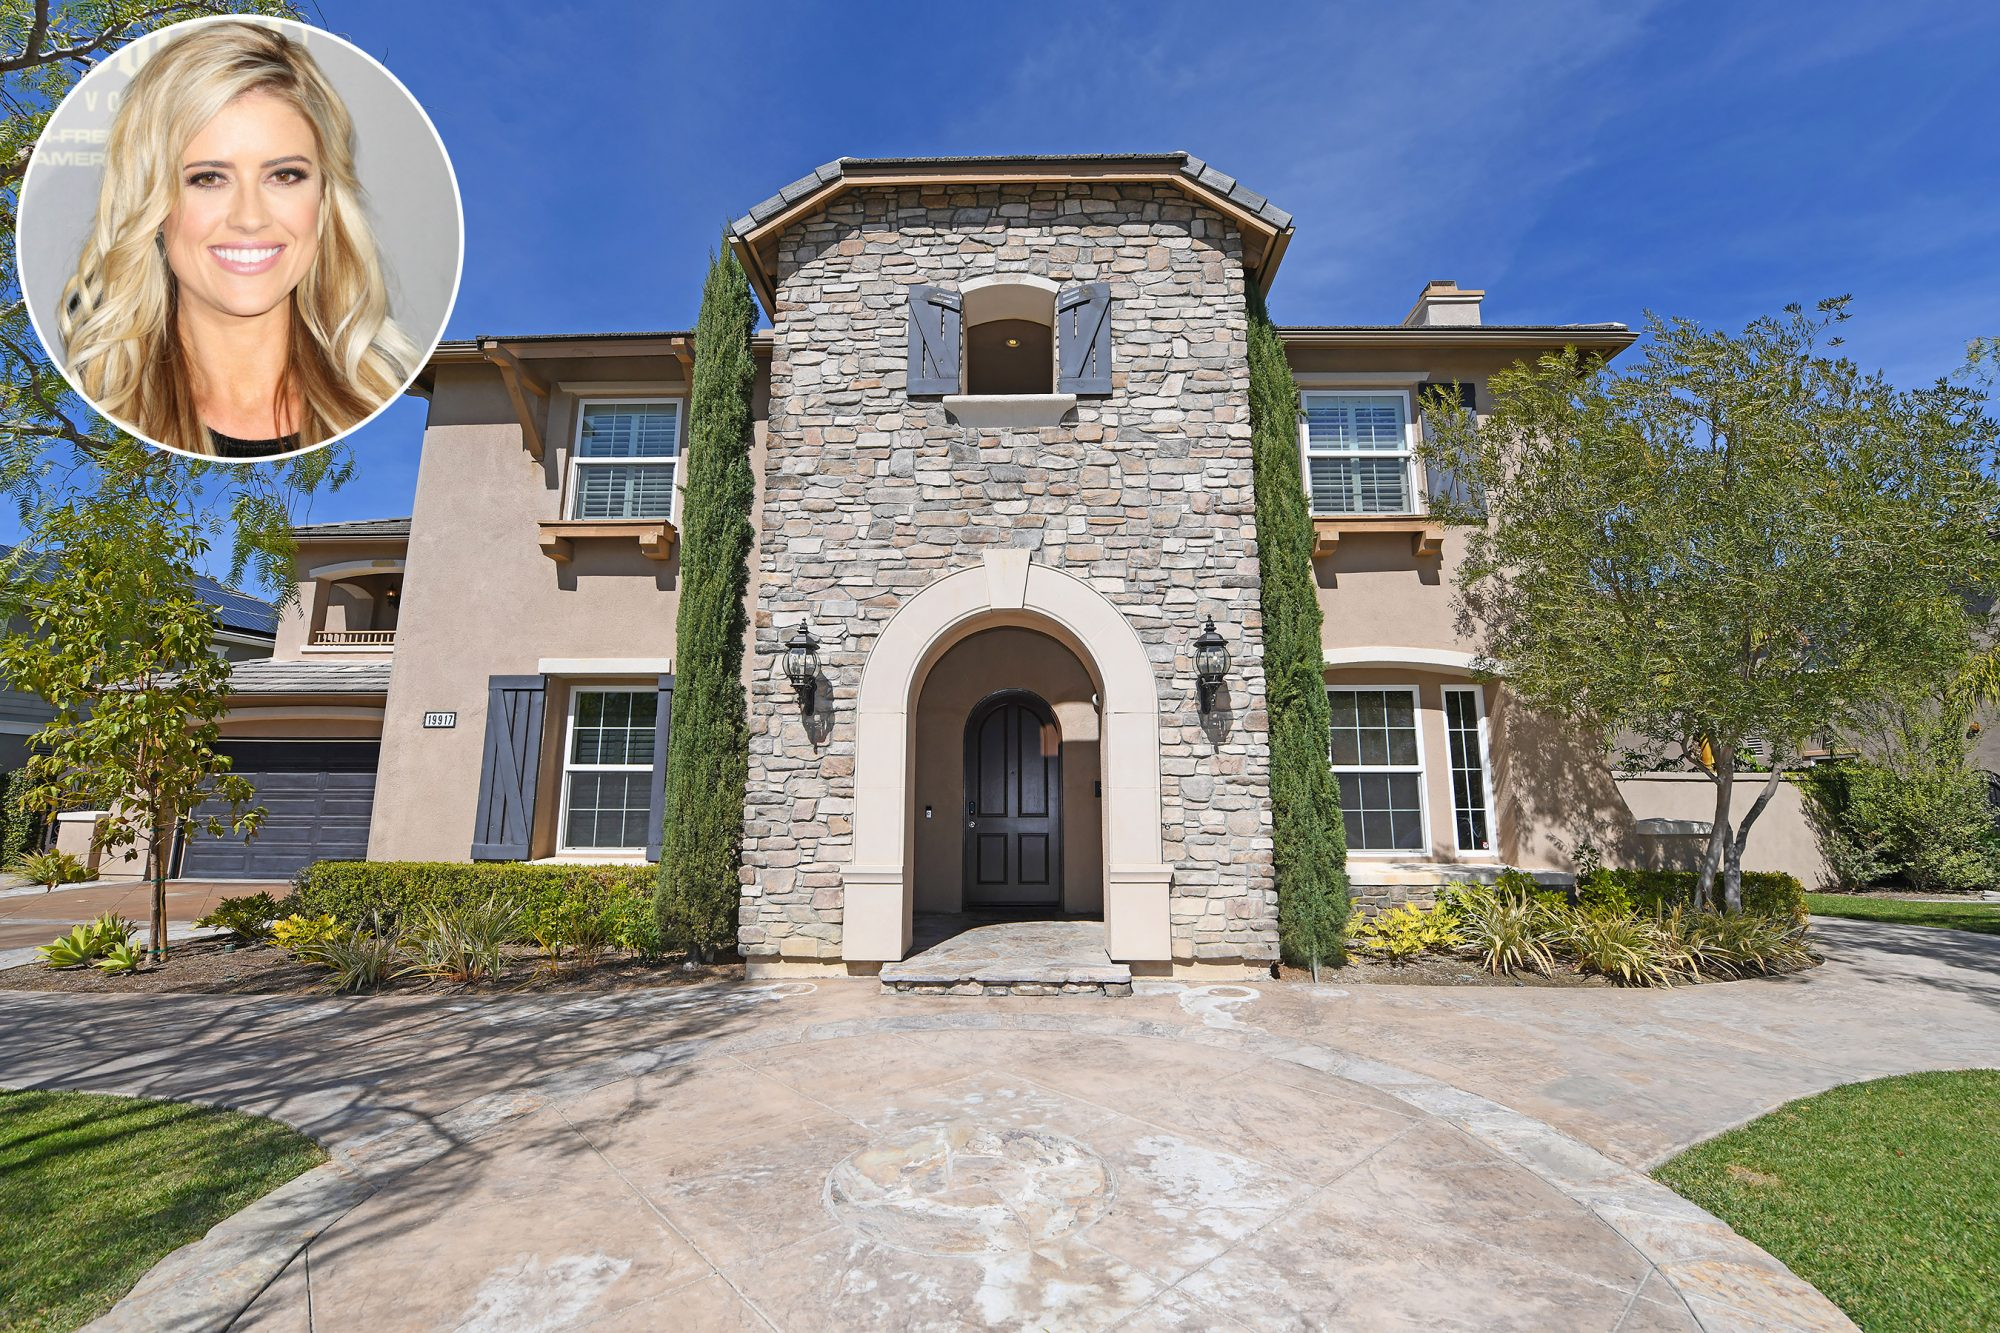 Christina El Moussa Is Selling Her Family's Home